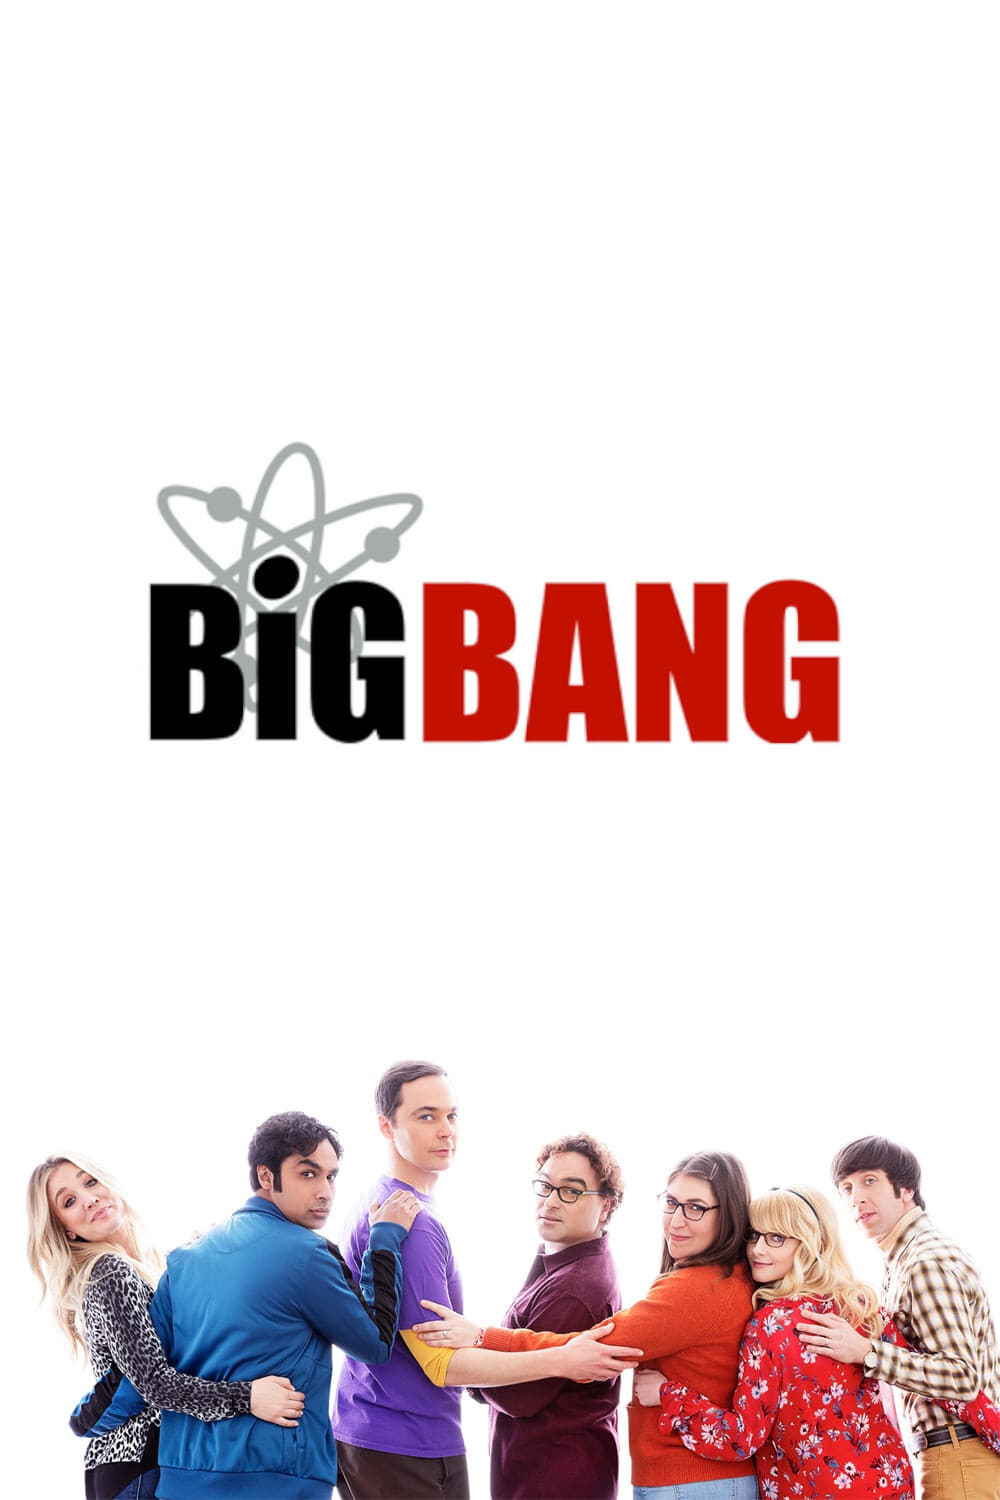 The Big Bang Theory' />